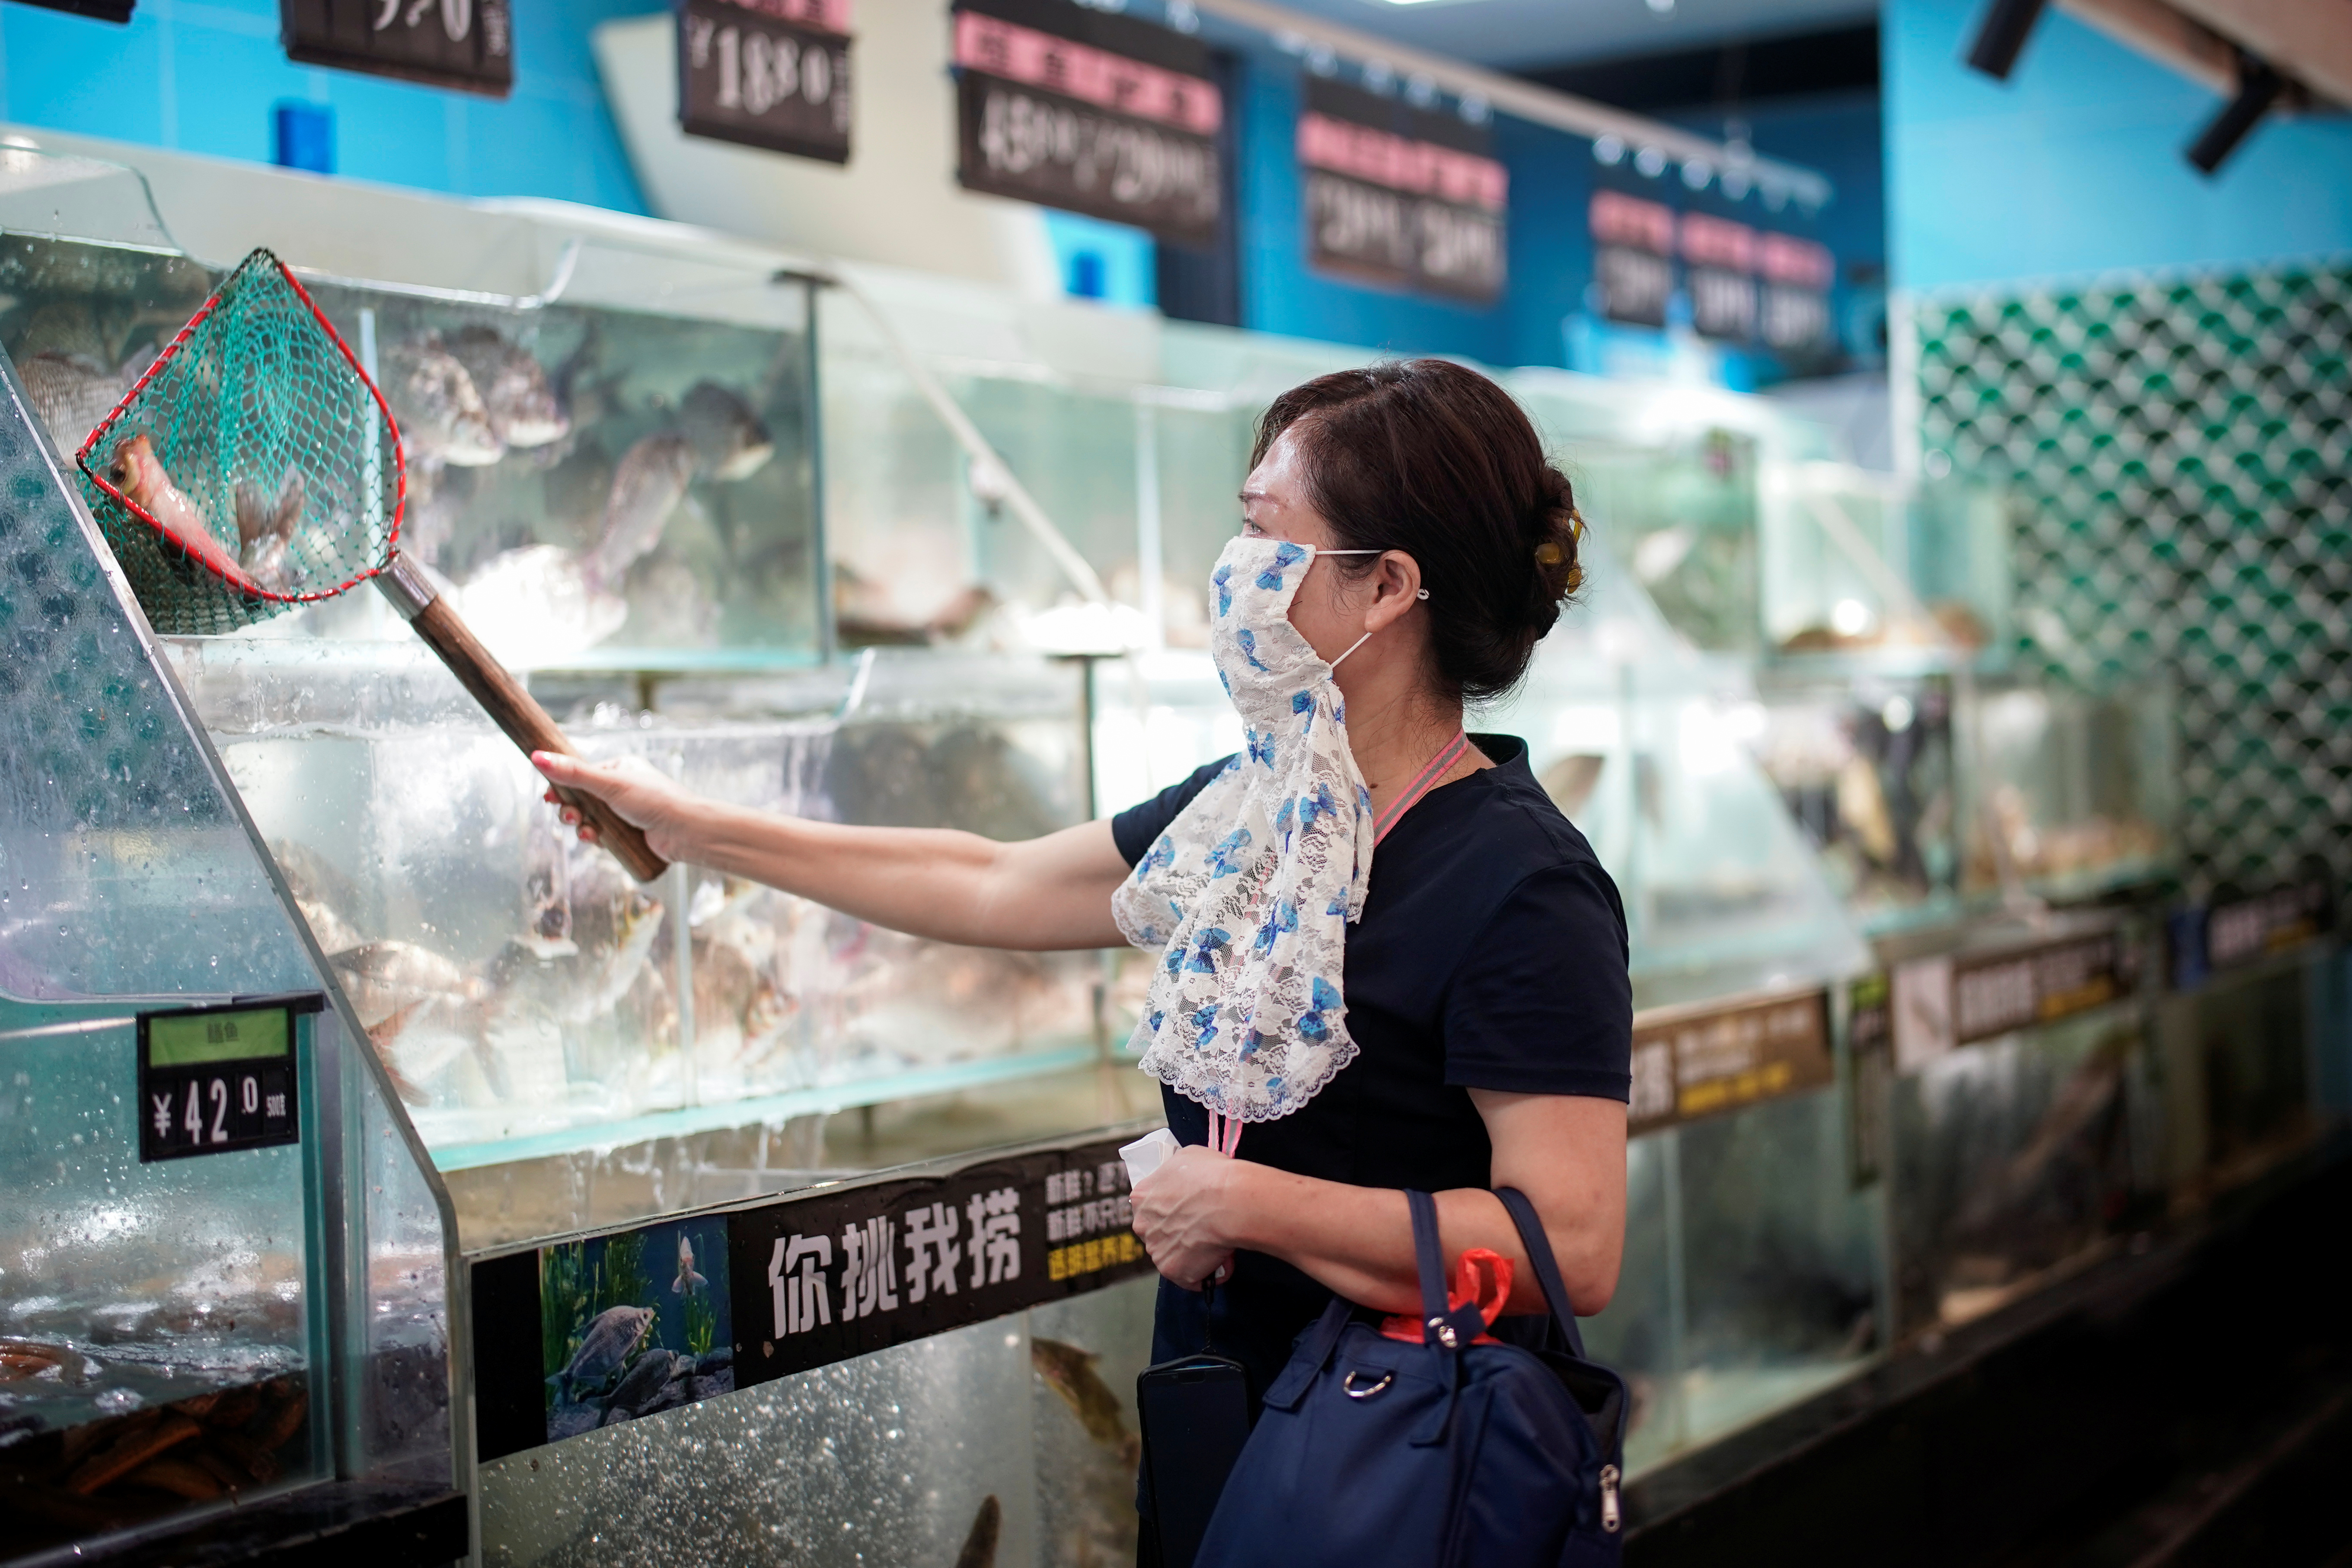 A woman buys live fish at a supermarket during a government-organized media tour following the coronavirus disease (COVID-19) outbreak, in Wuhan, Hubei province, China, September 4, 2020. REUTERS/Aly Song